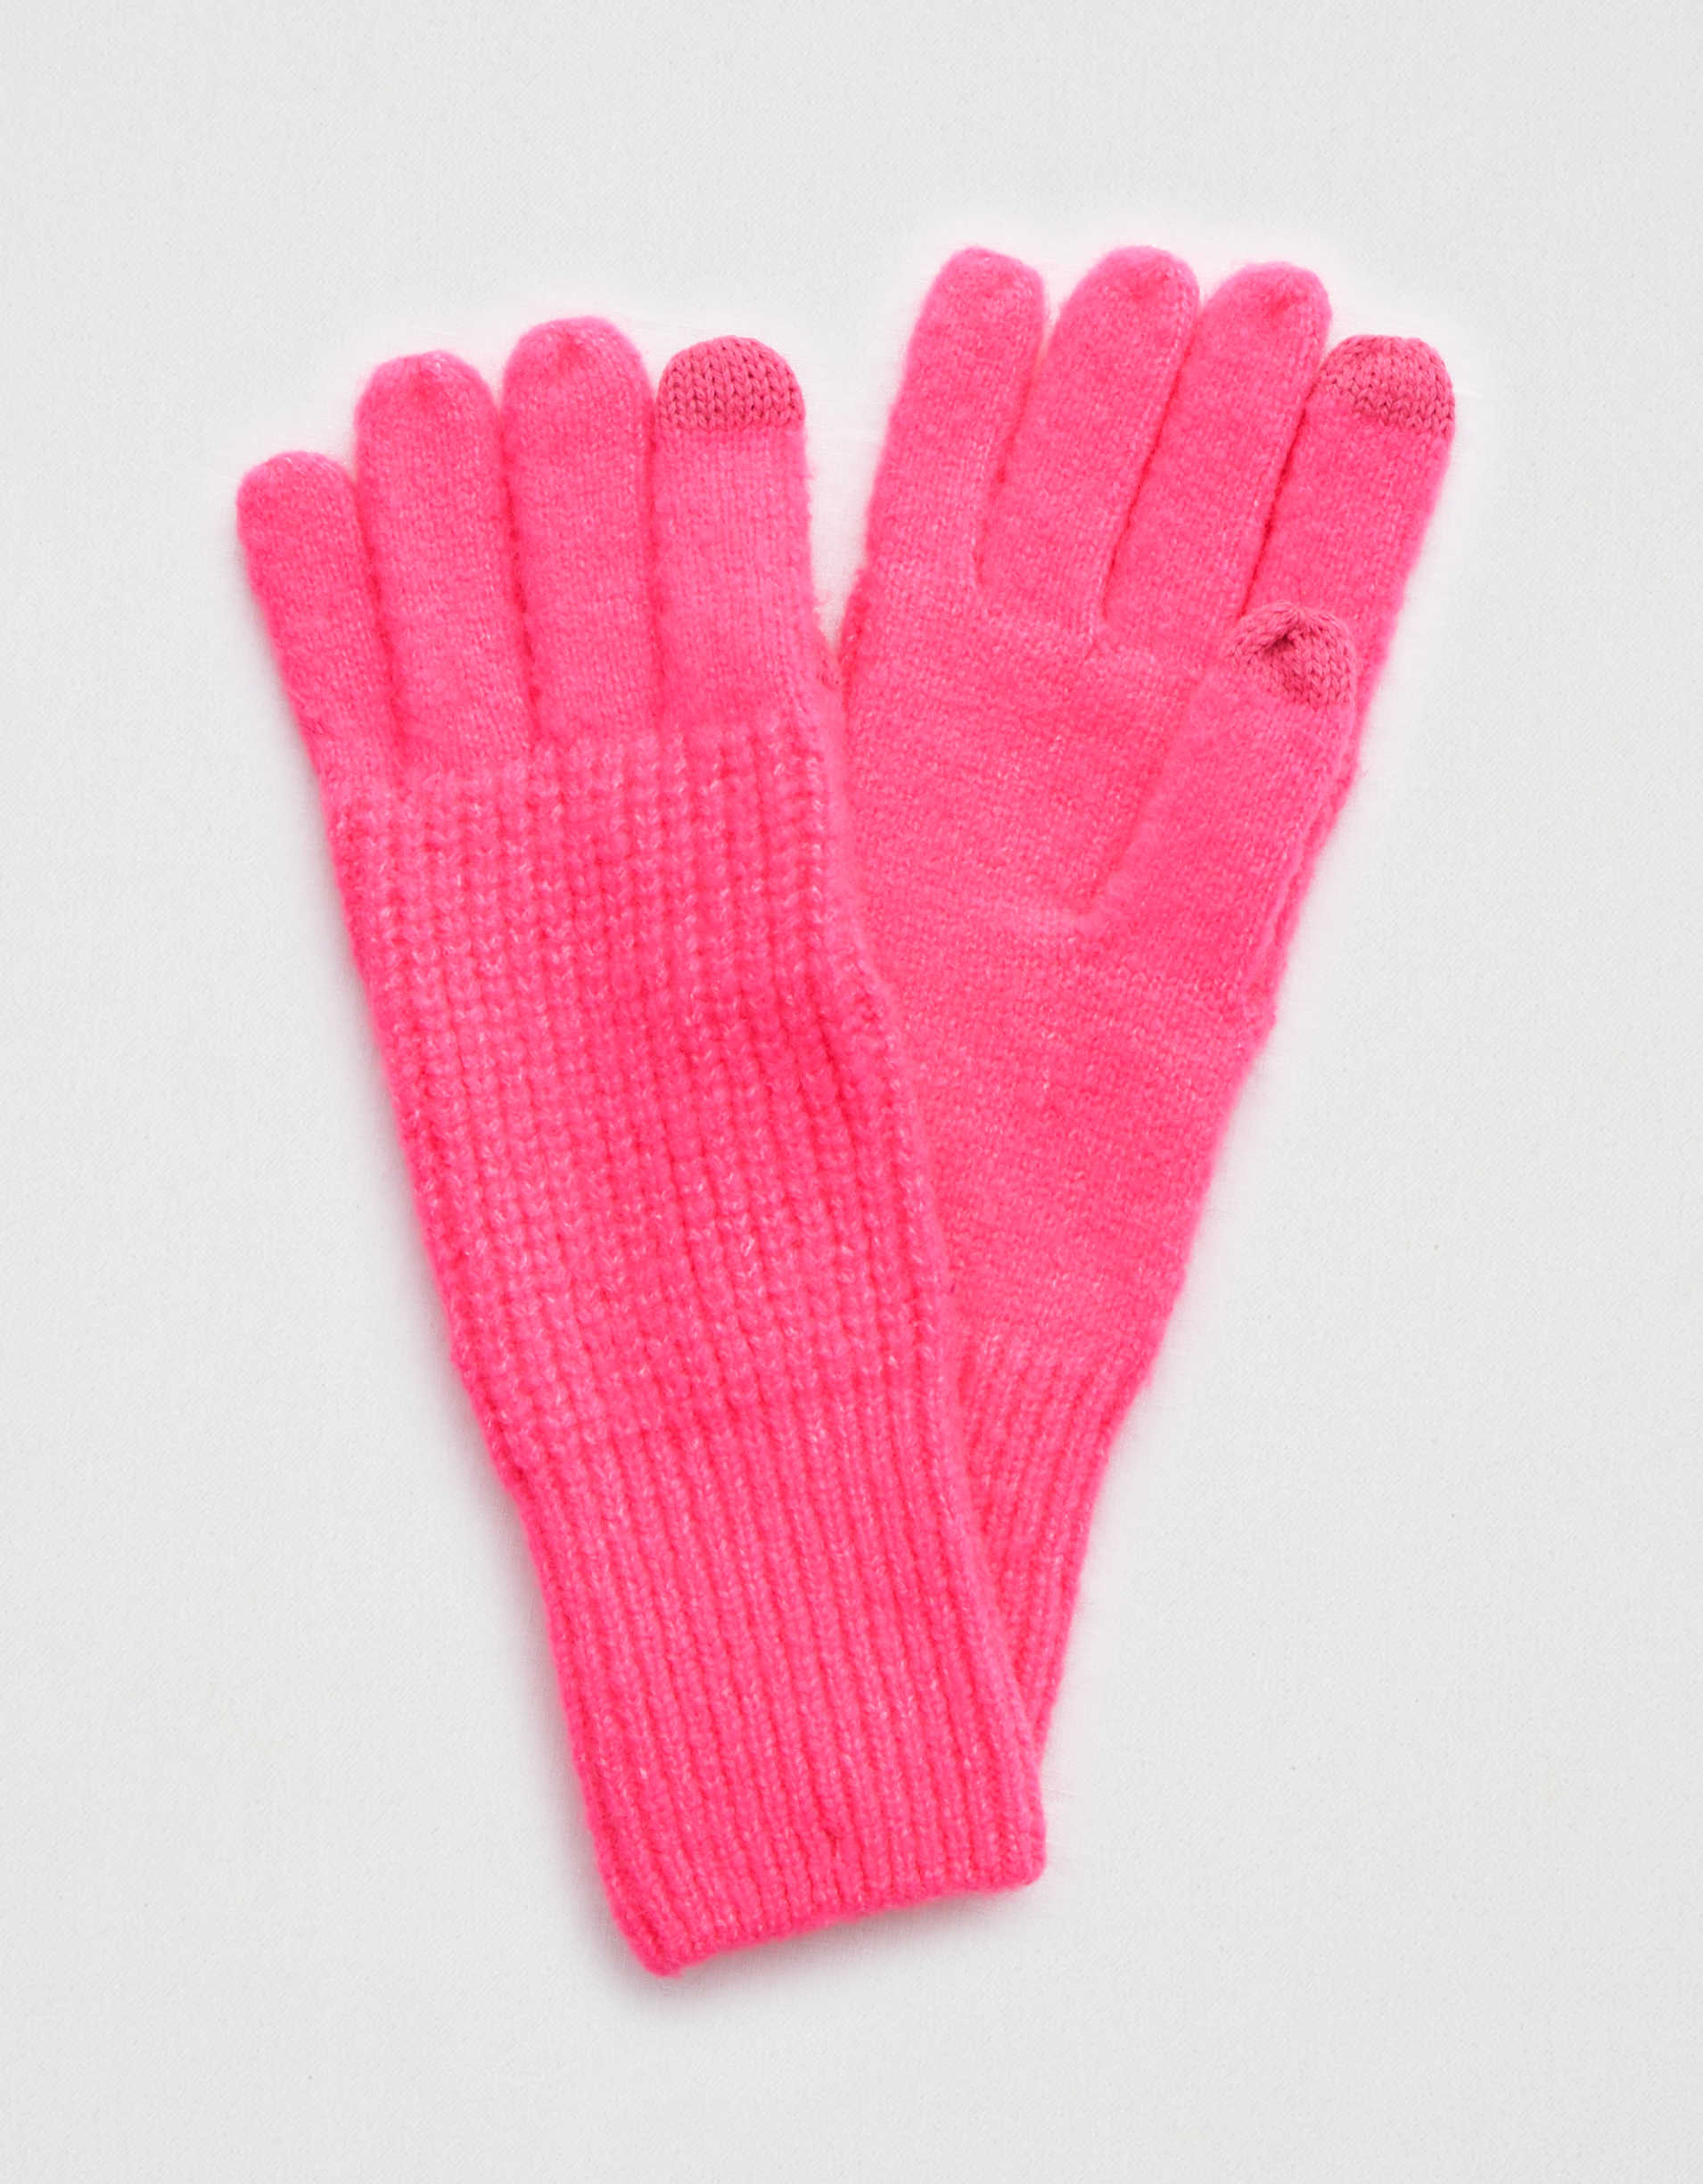 Aerie Touchpoint Gloves